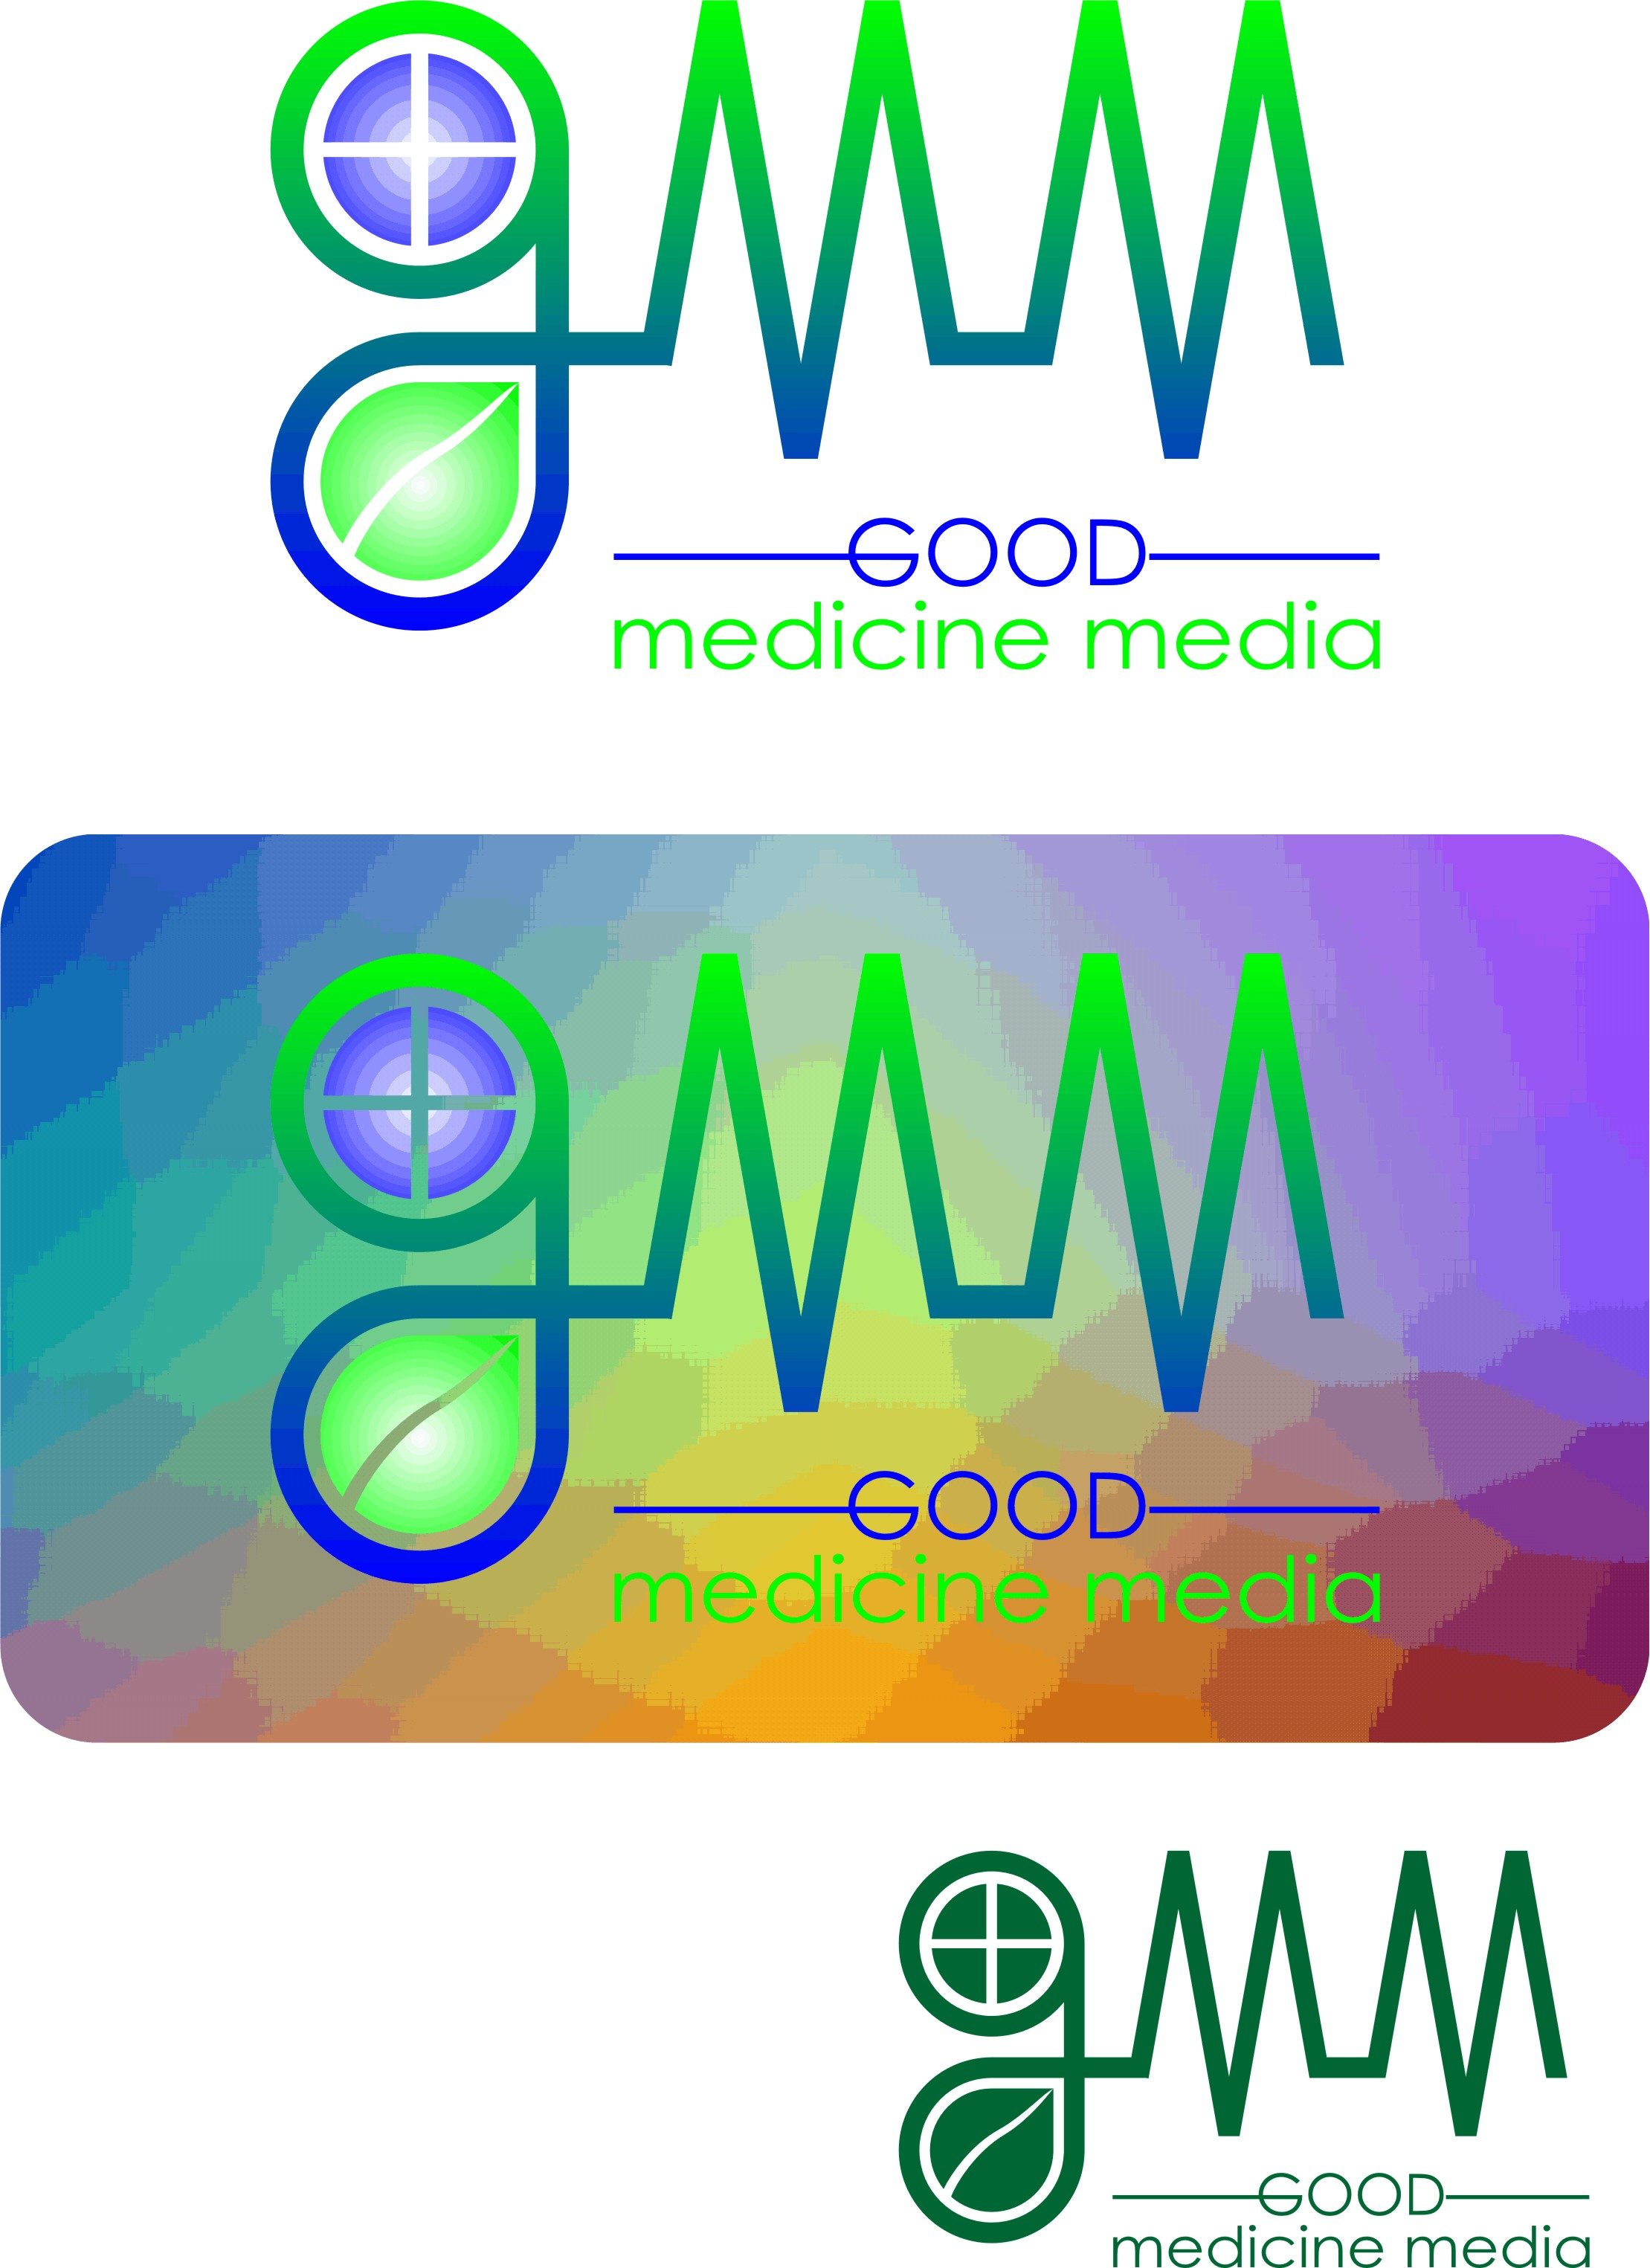 Logo Design by Korsunov Oleg - Entry No. 70 in the Logo Design Contest Good Medicine Media Logo Design.